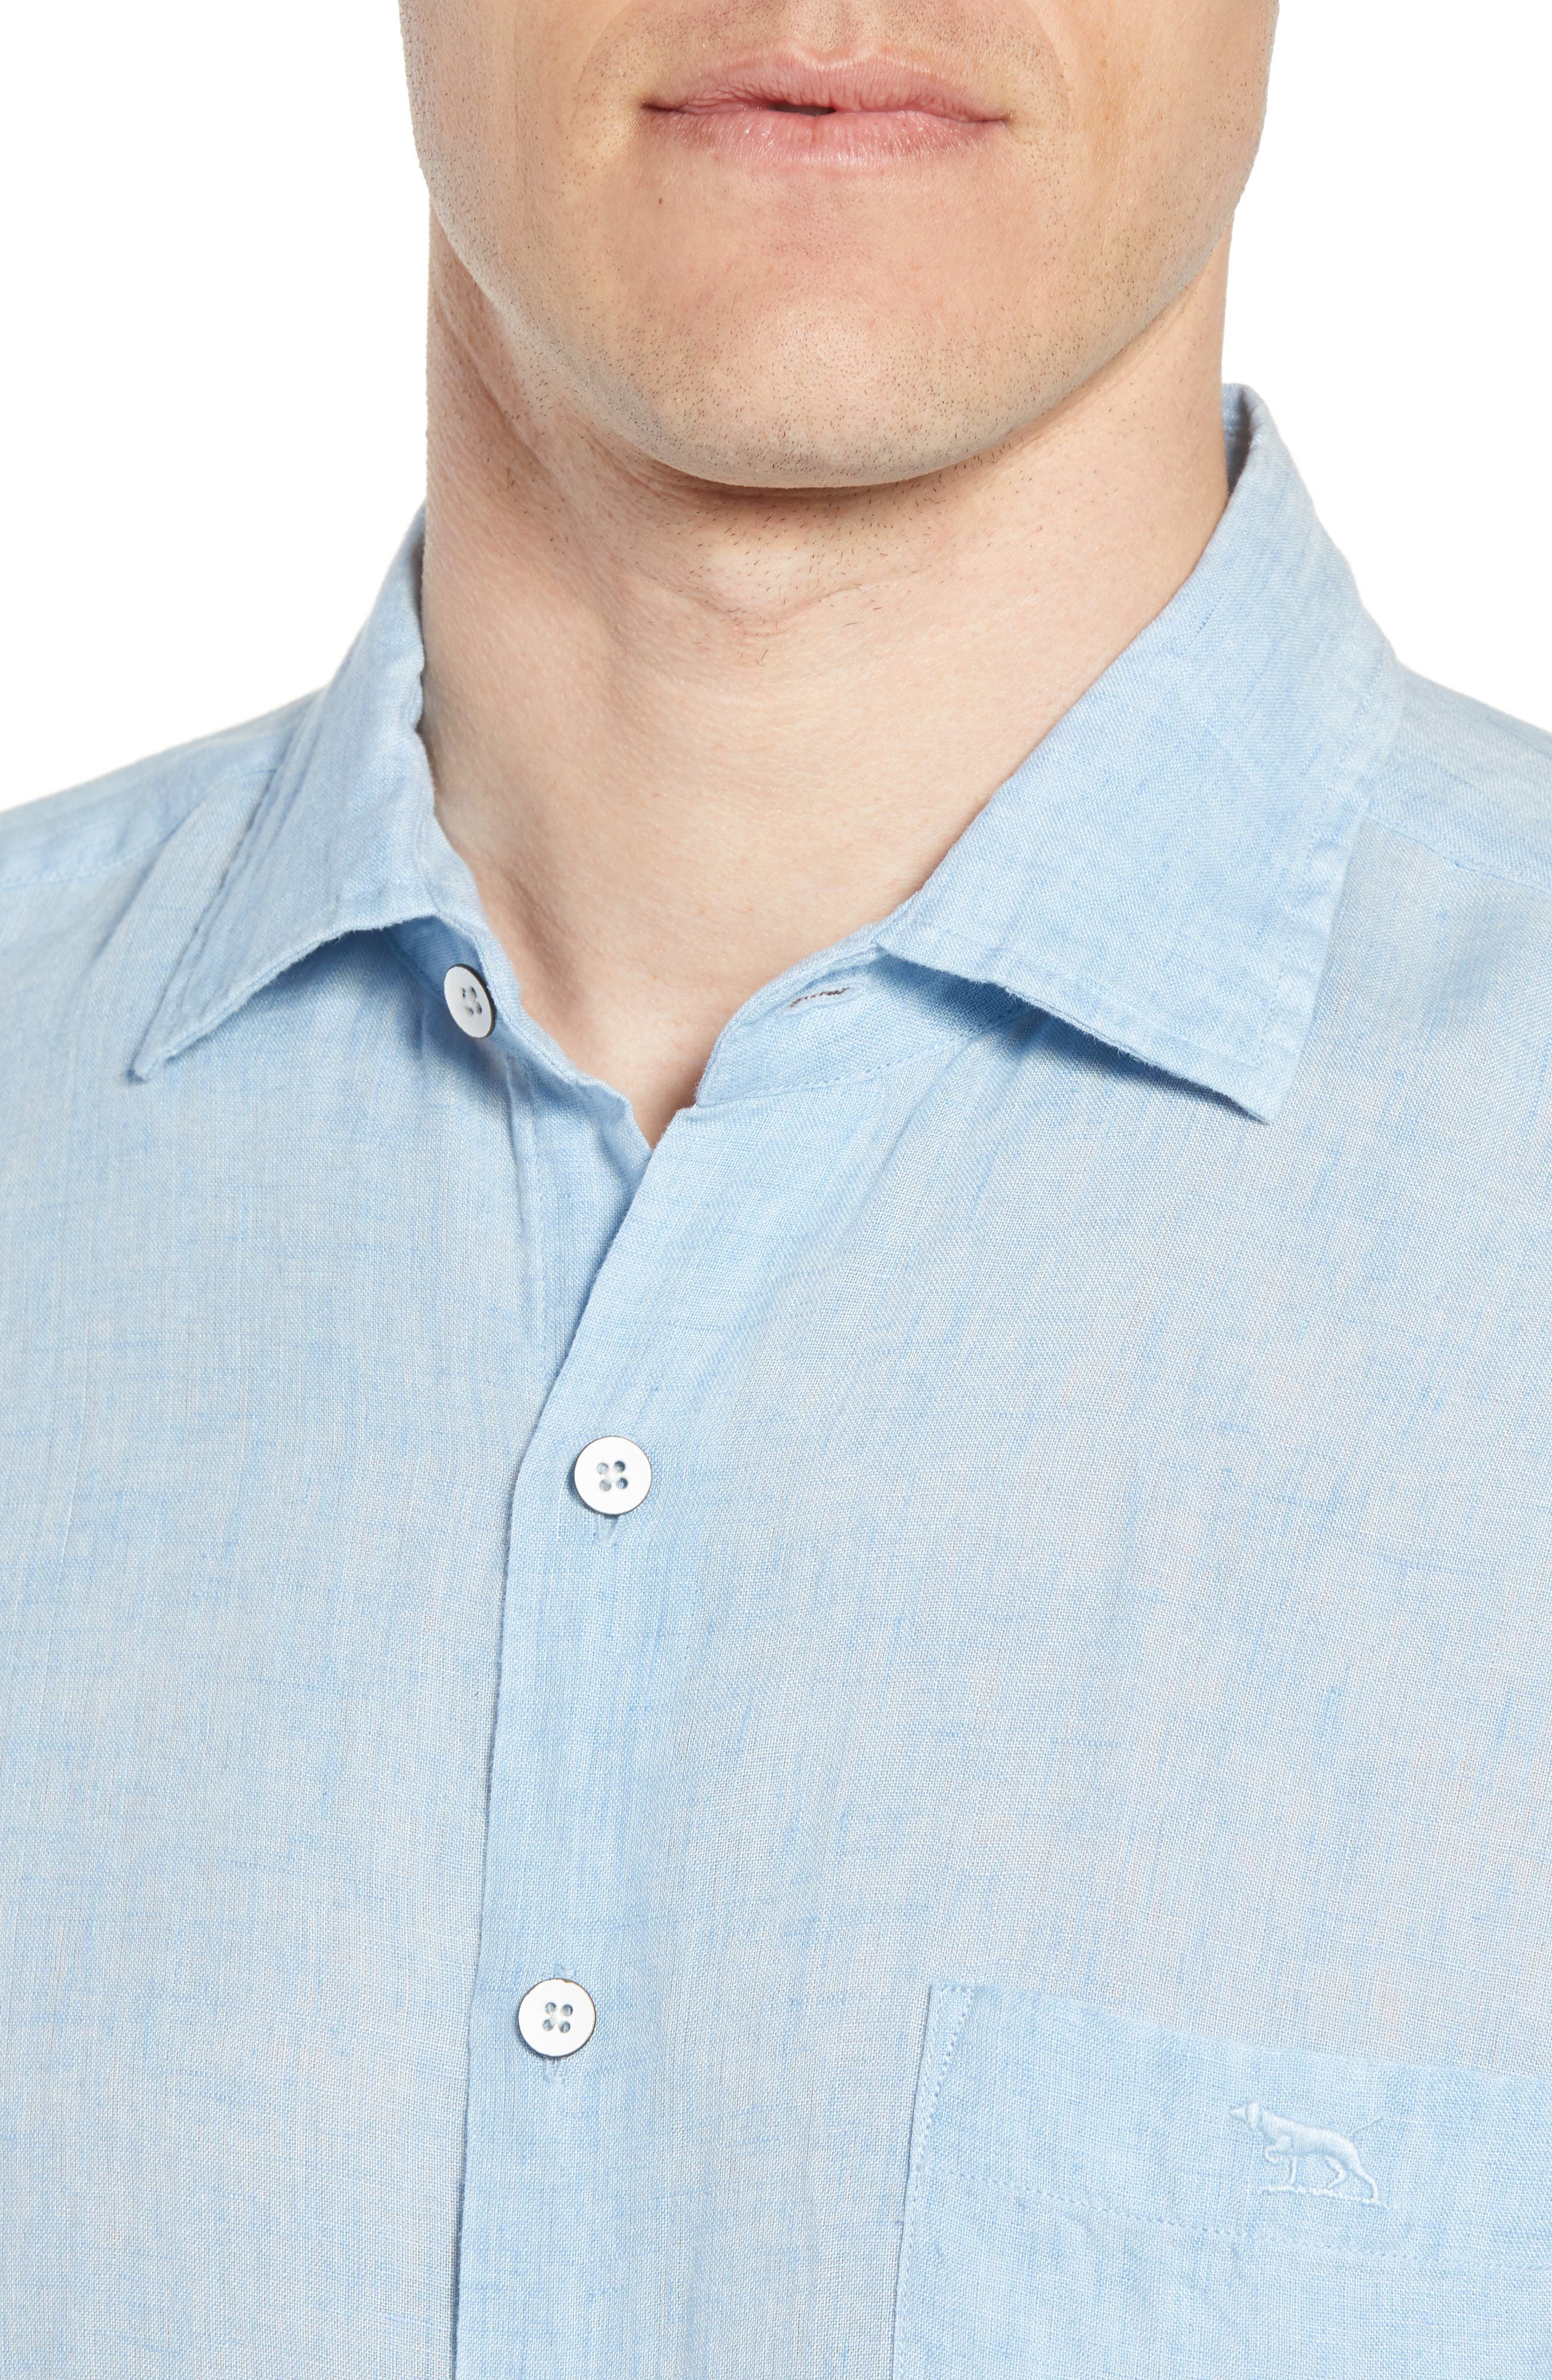 Harris Bay Regular Fit Linen Sport Shirt,                             Alternate thumbnail 4, color,                             STONEWASH